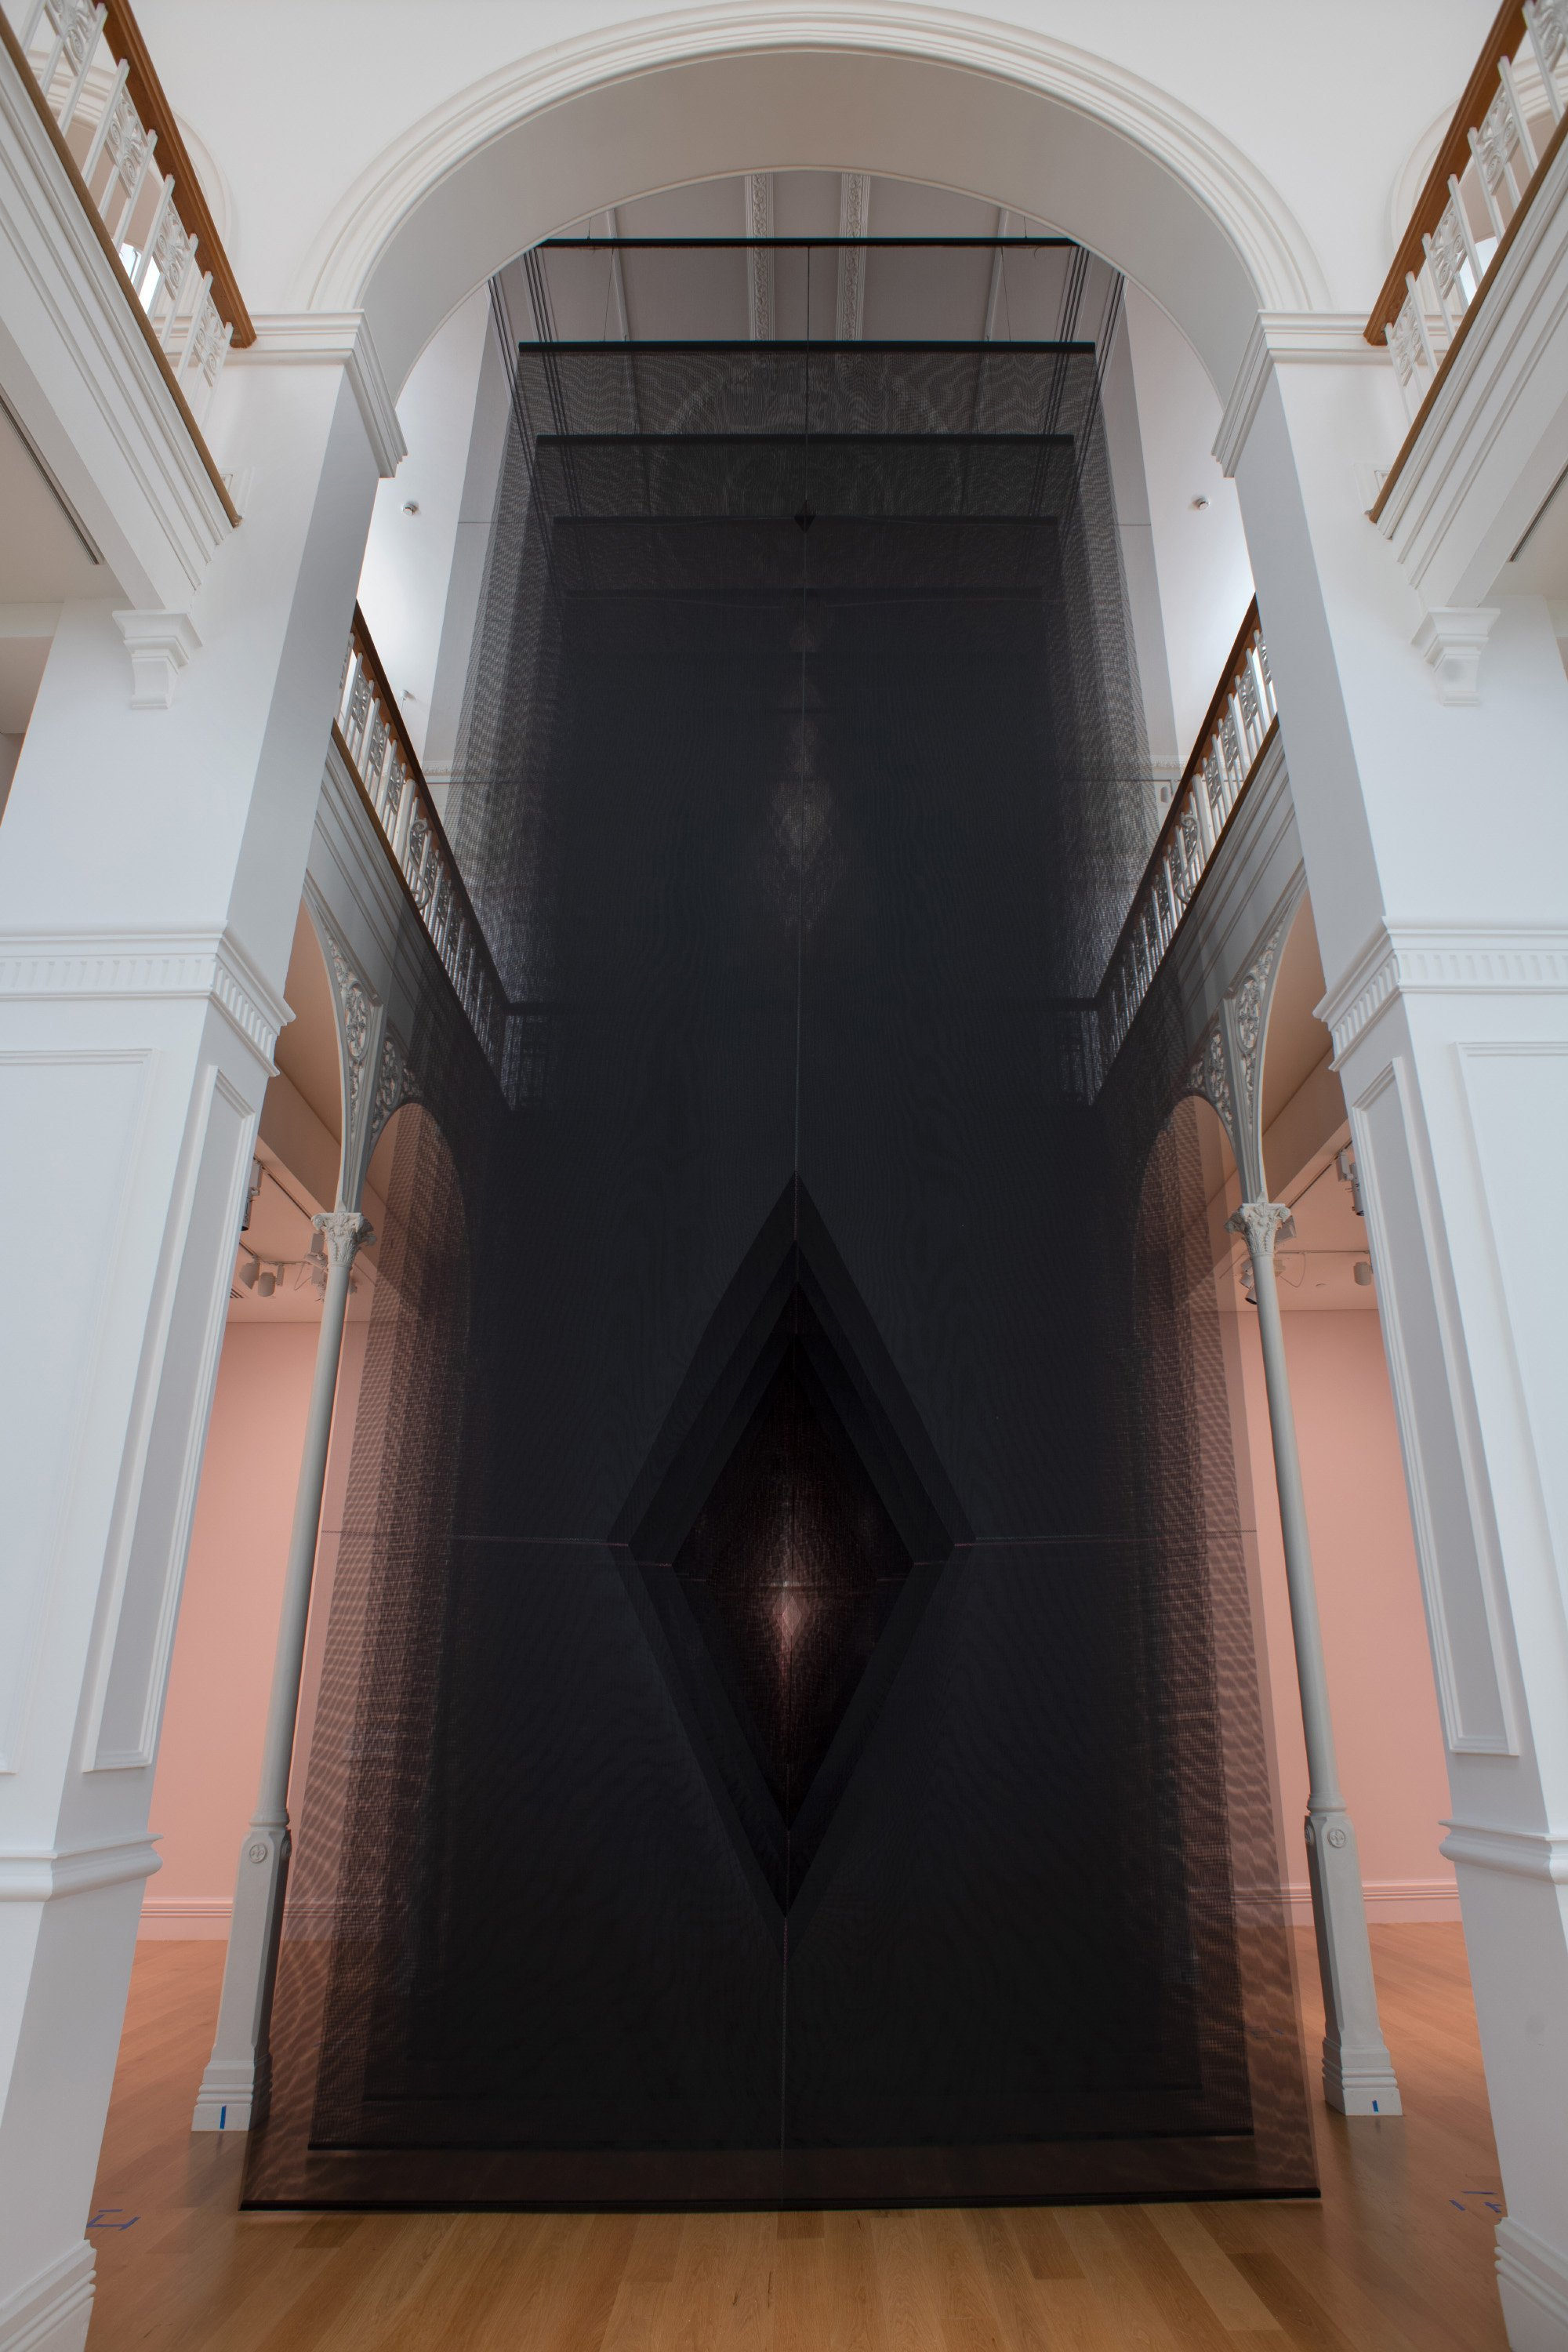 Atapo (2020), by the Mata Aho Collective and Maureen Lander, won the Walters Prize in 2021. PHOTO...